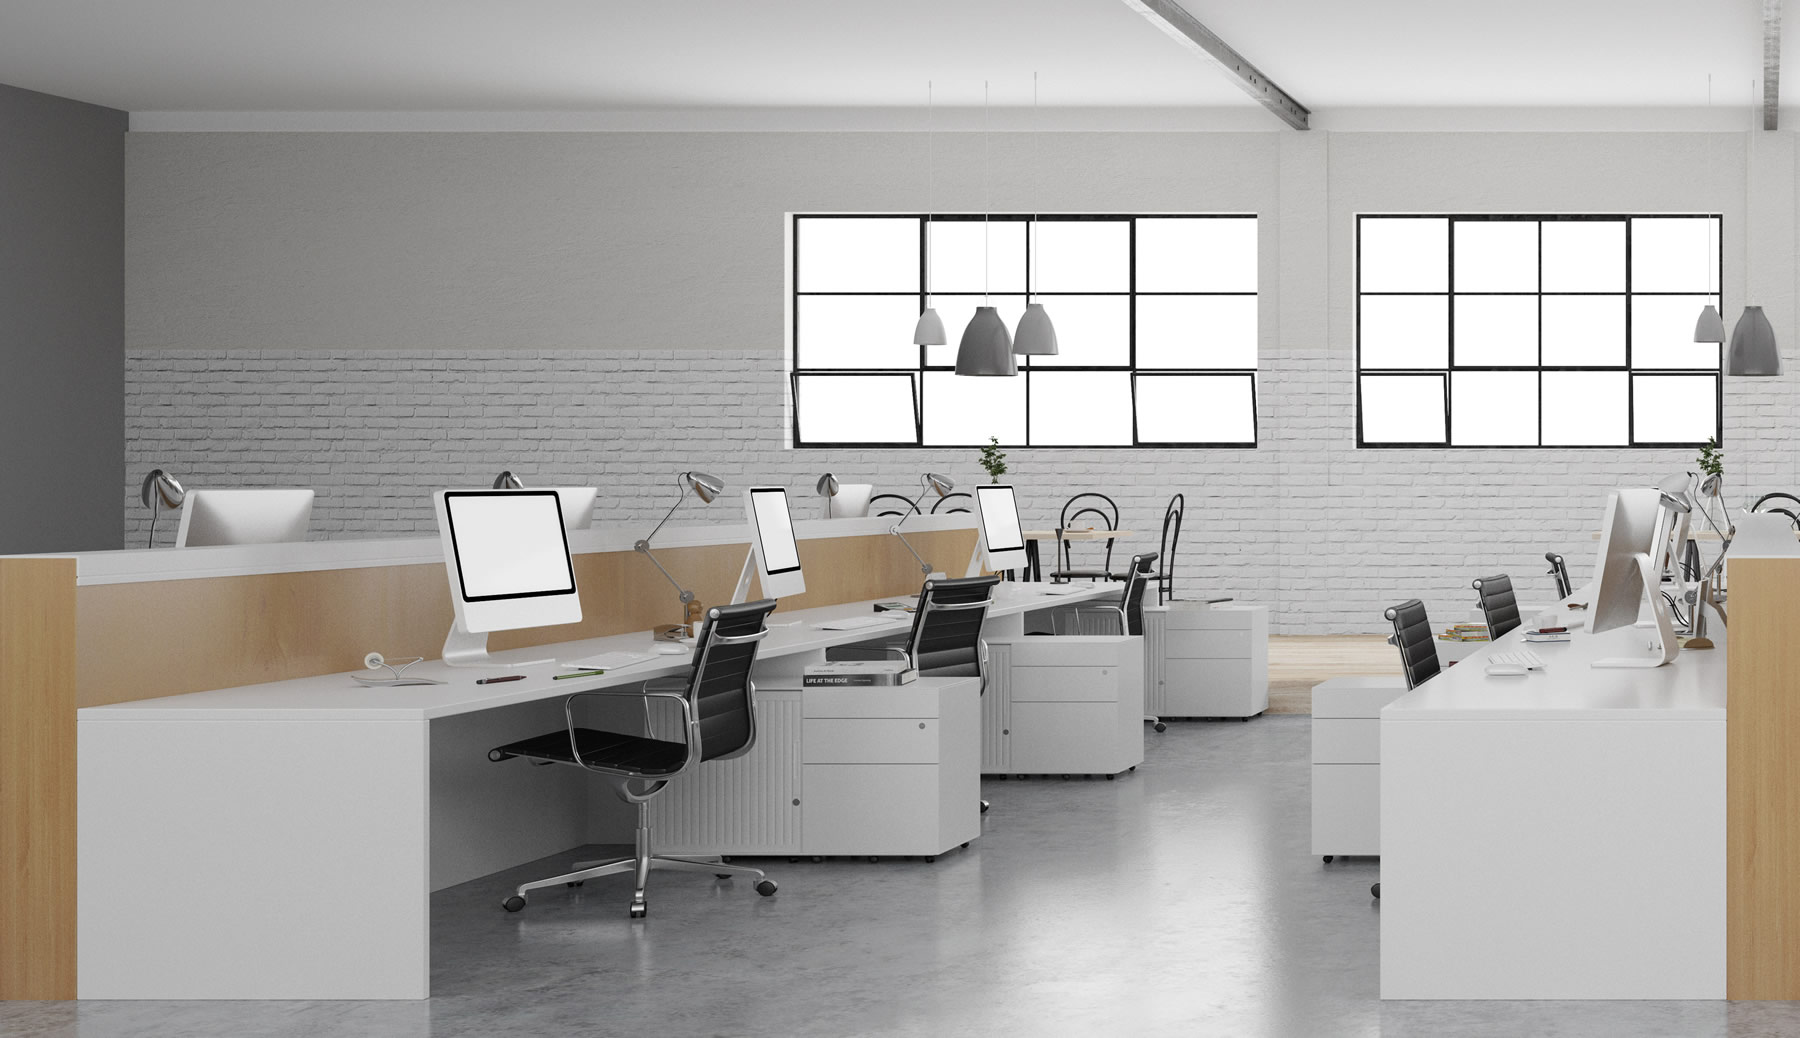 Modern office with empty chairs - Waivers